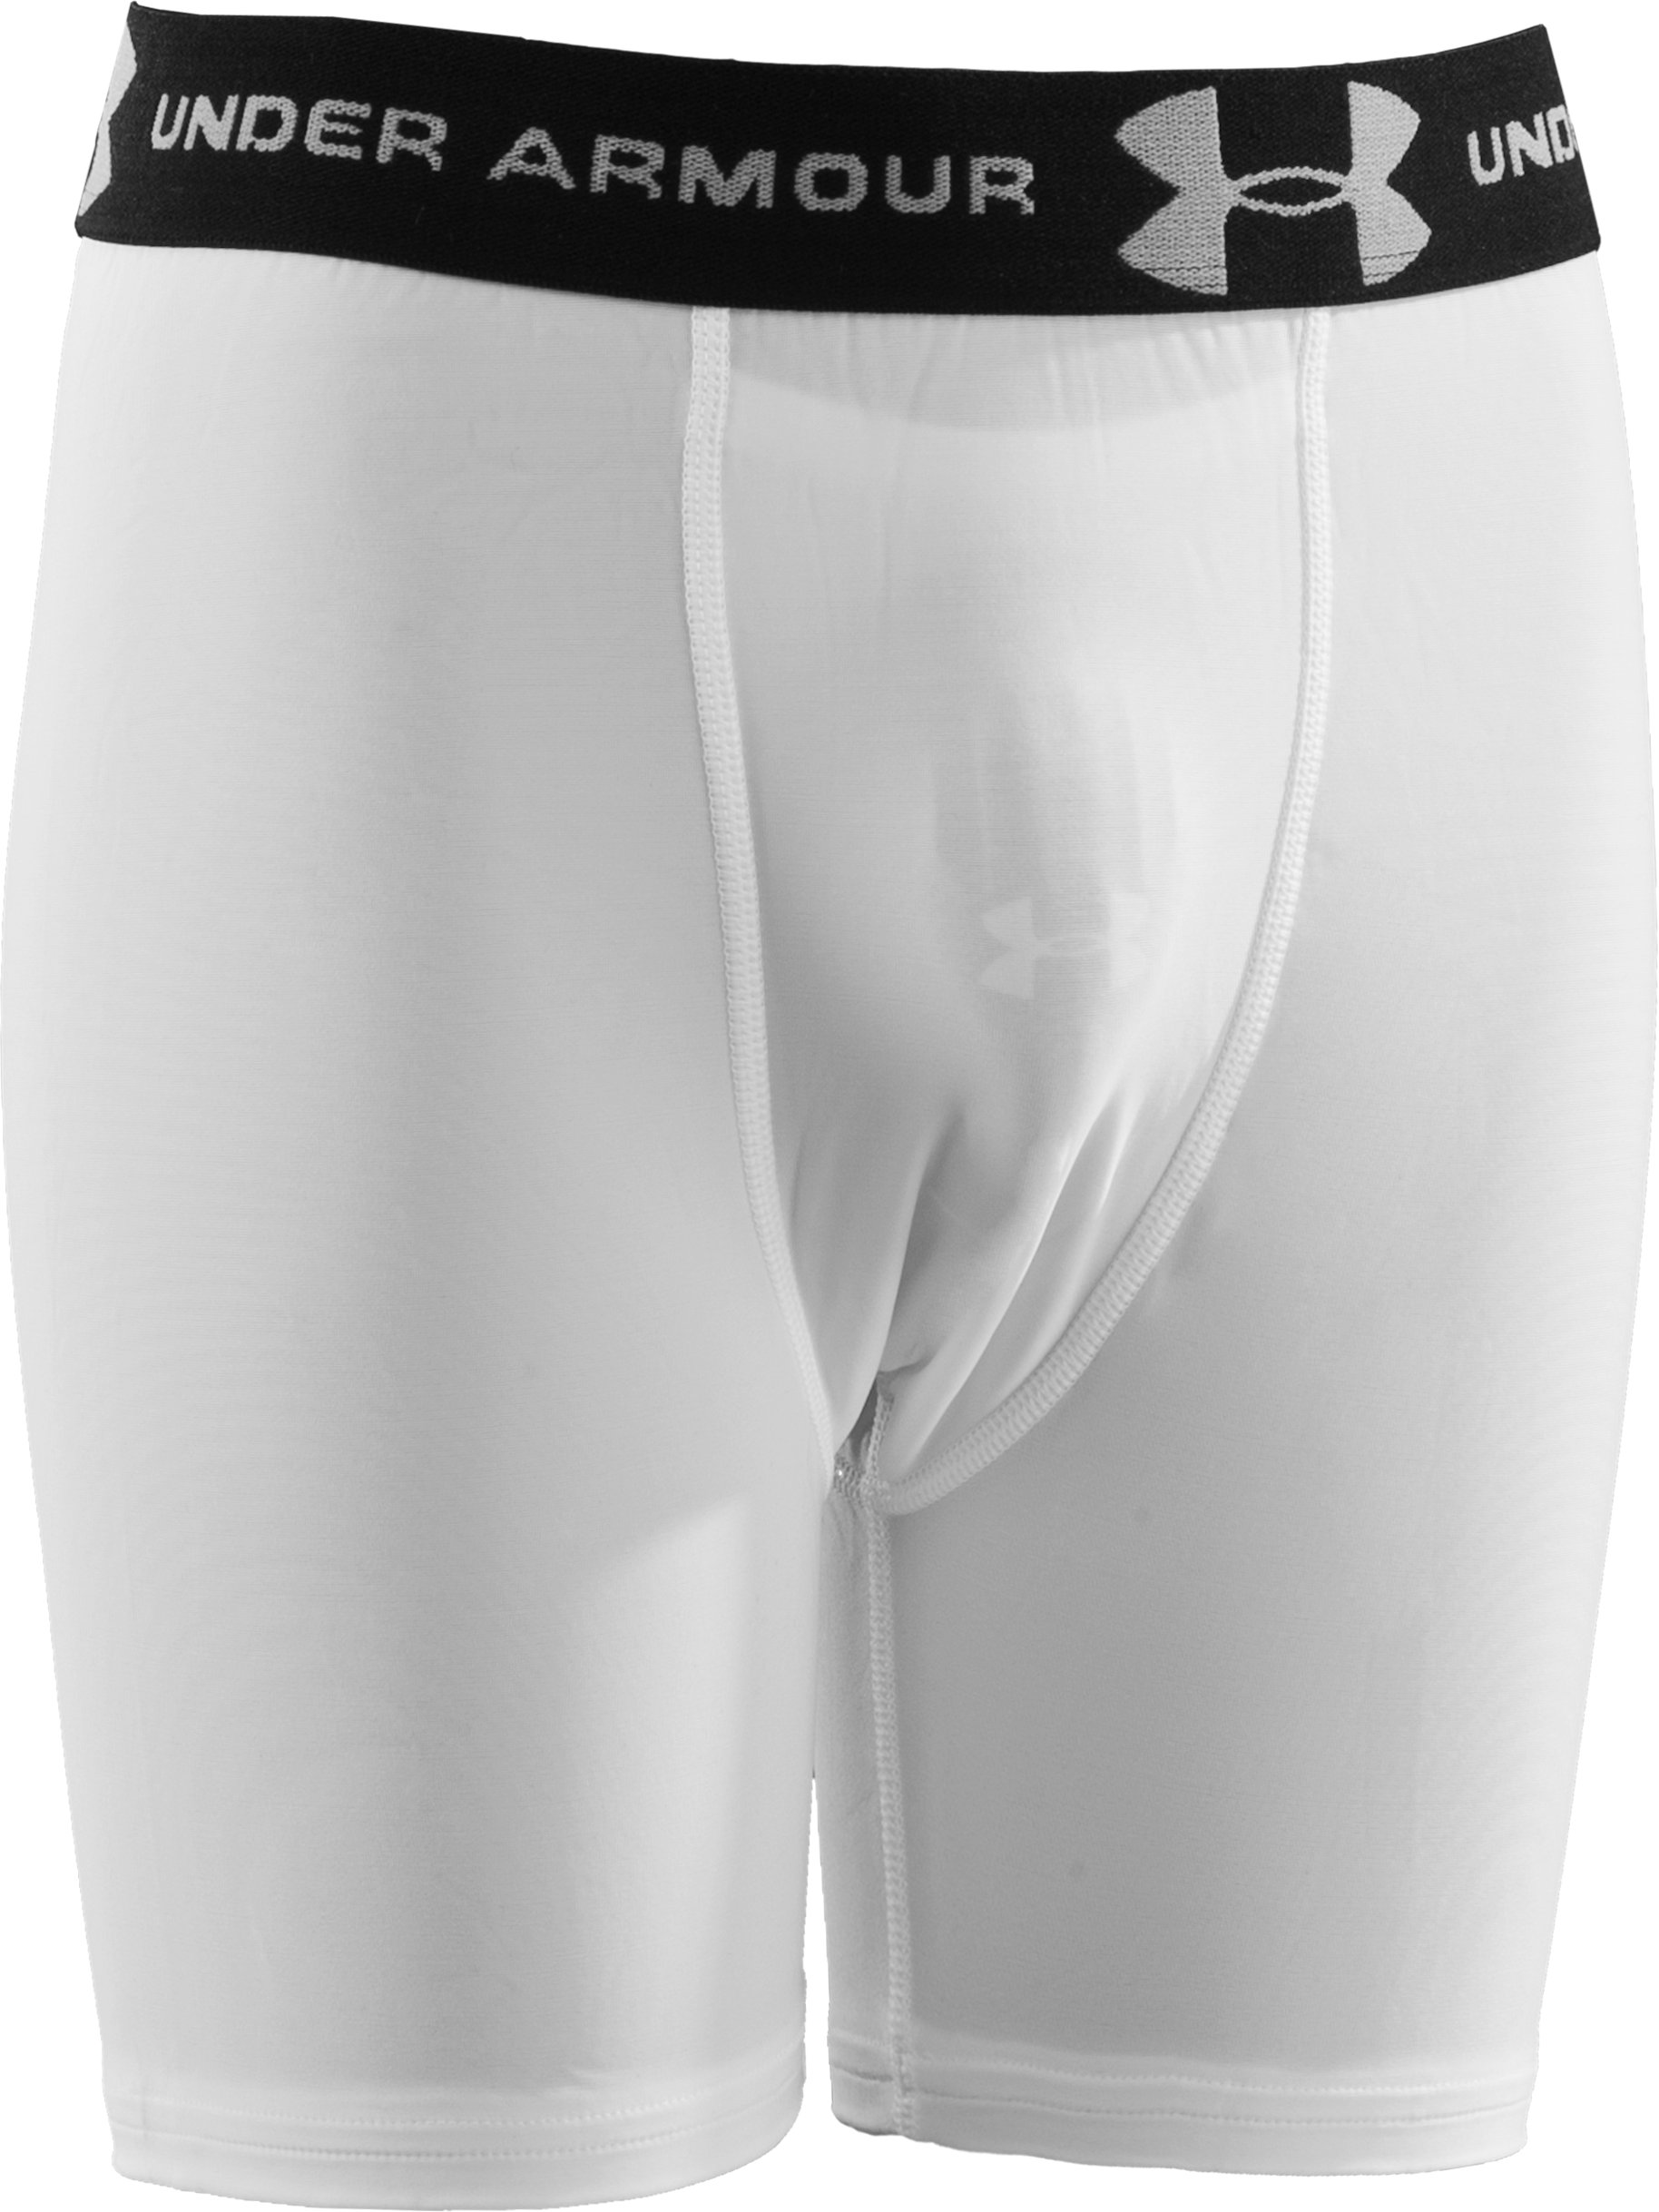 Boys' Compression Shorts with Cup, White